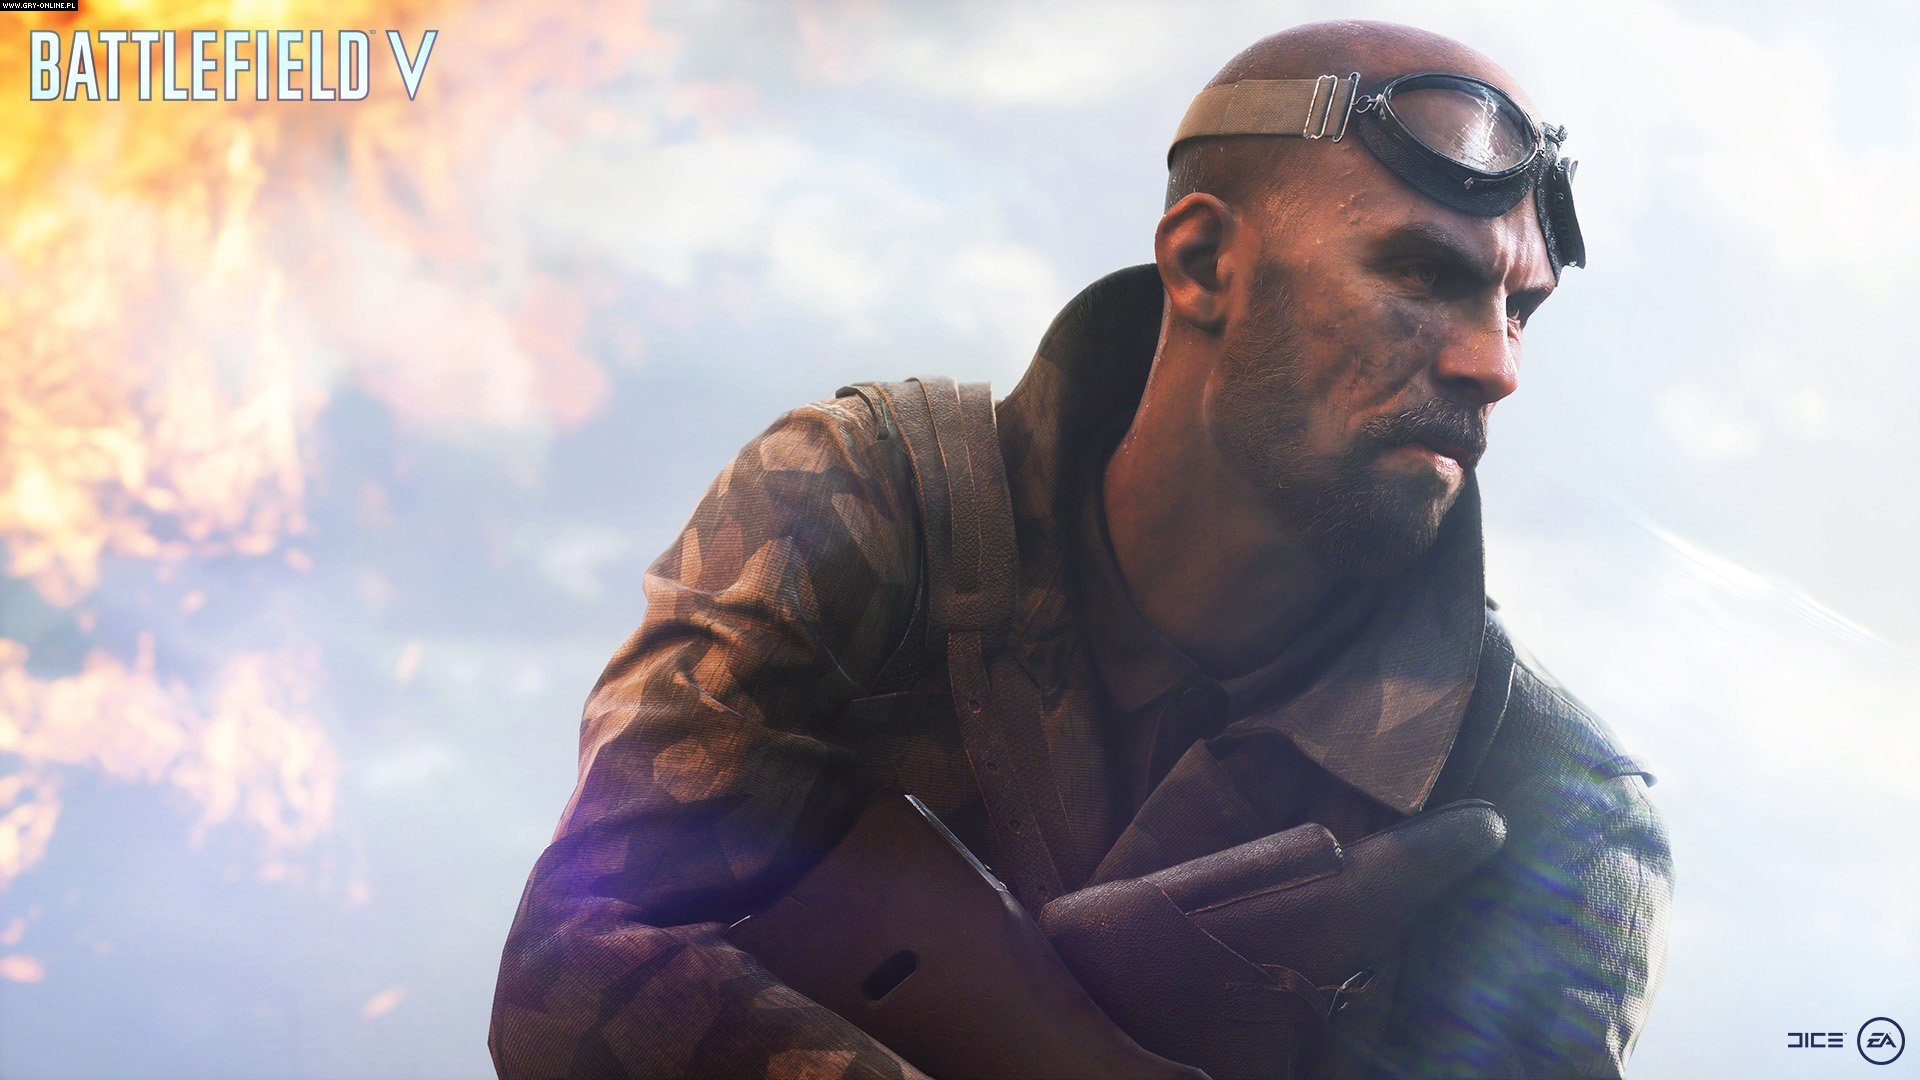 Battlefield V PC, PS4, XONE Games Image 29/38, EA DICE / Digital Illusions CE, Electronic Arts Inc.